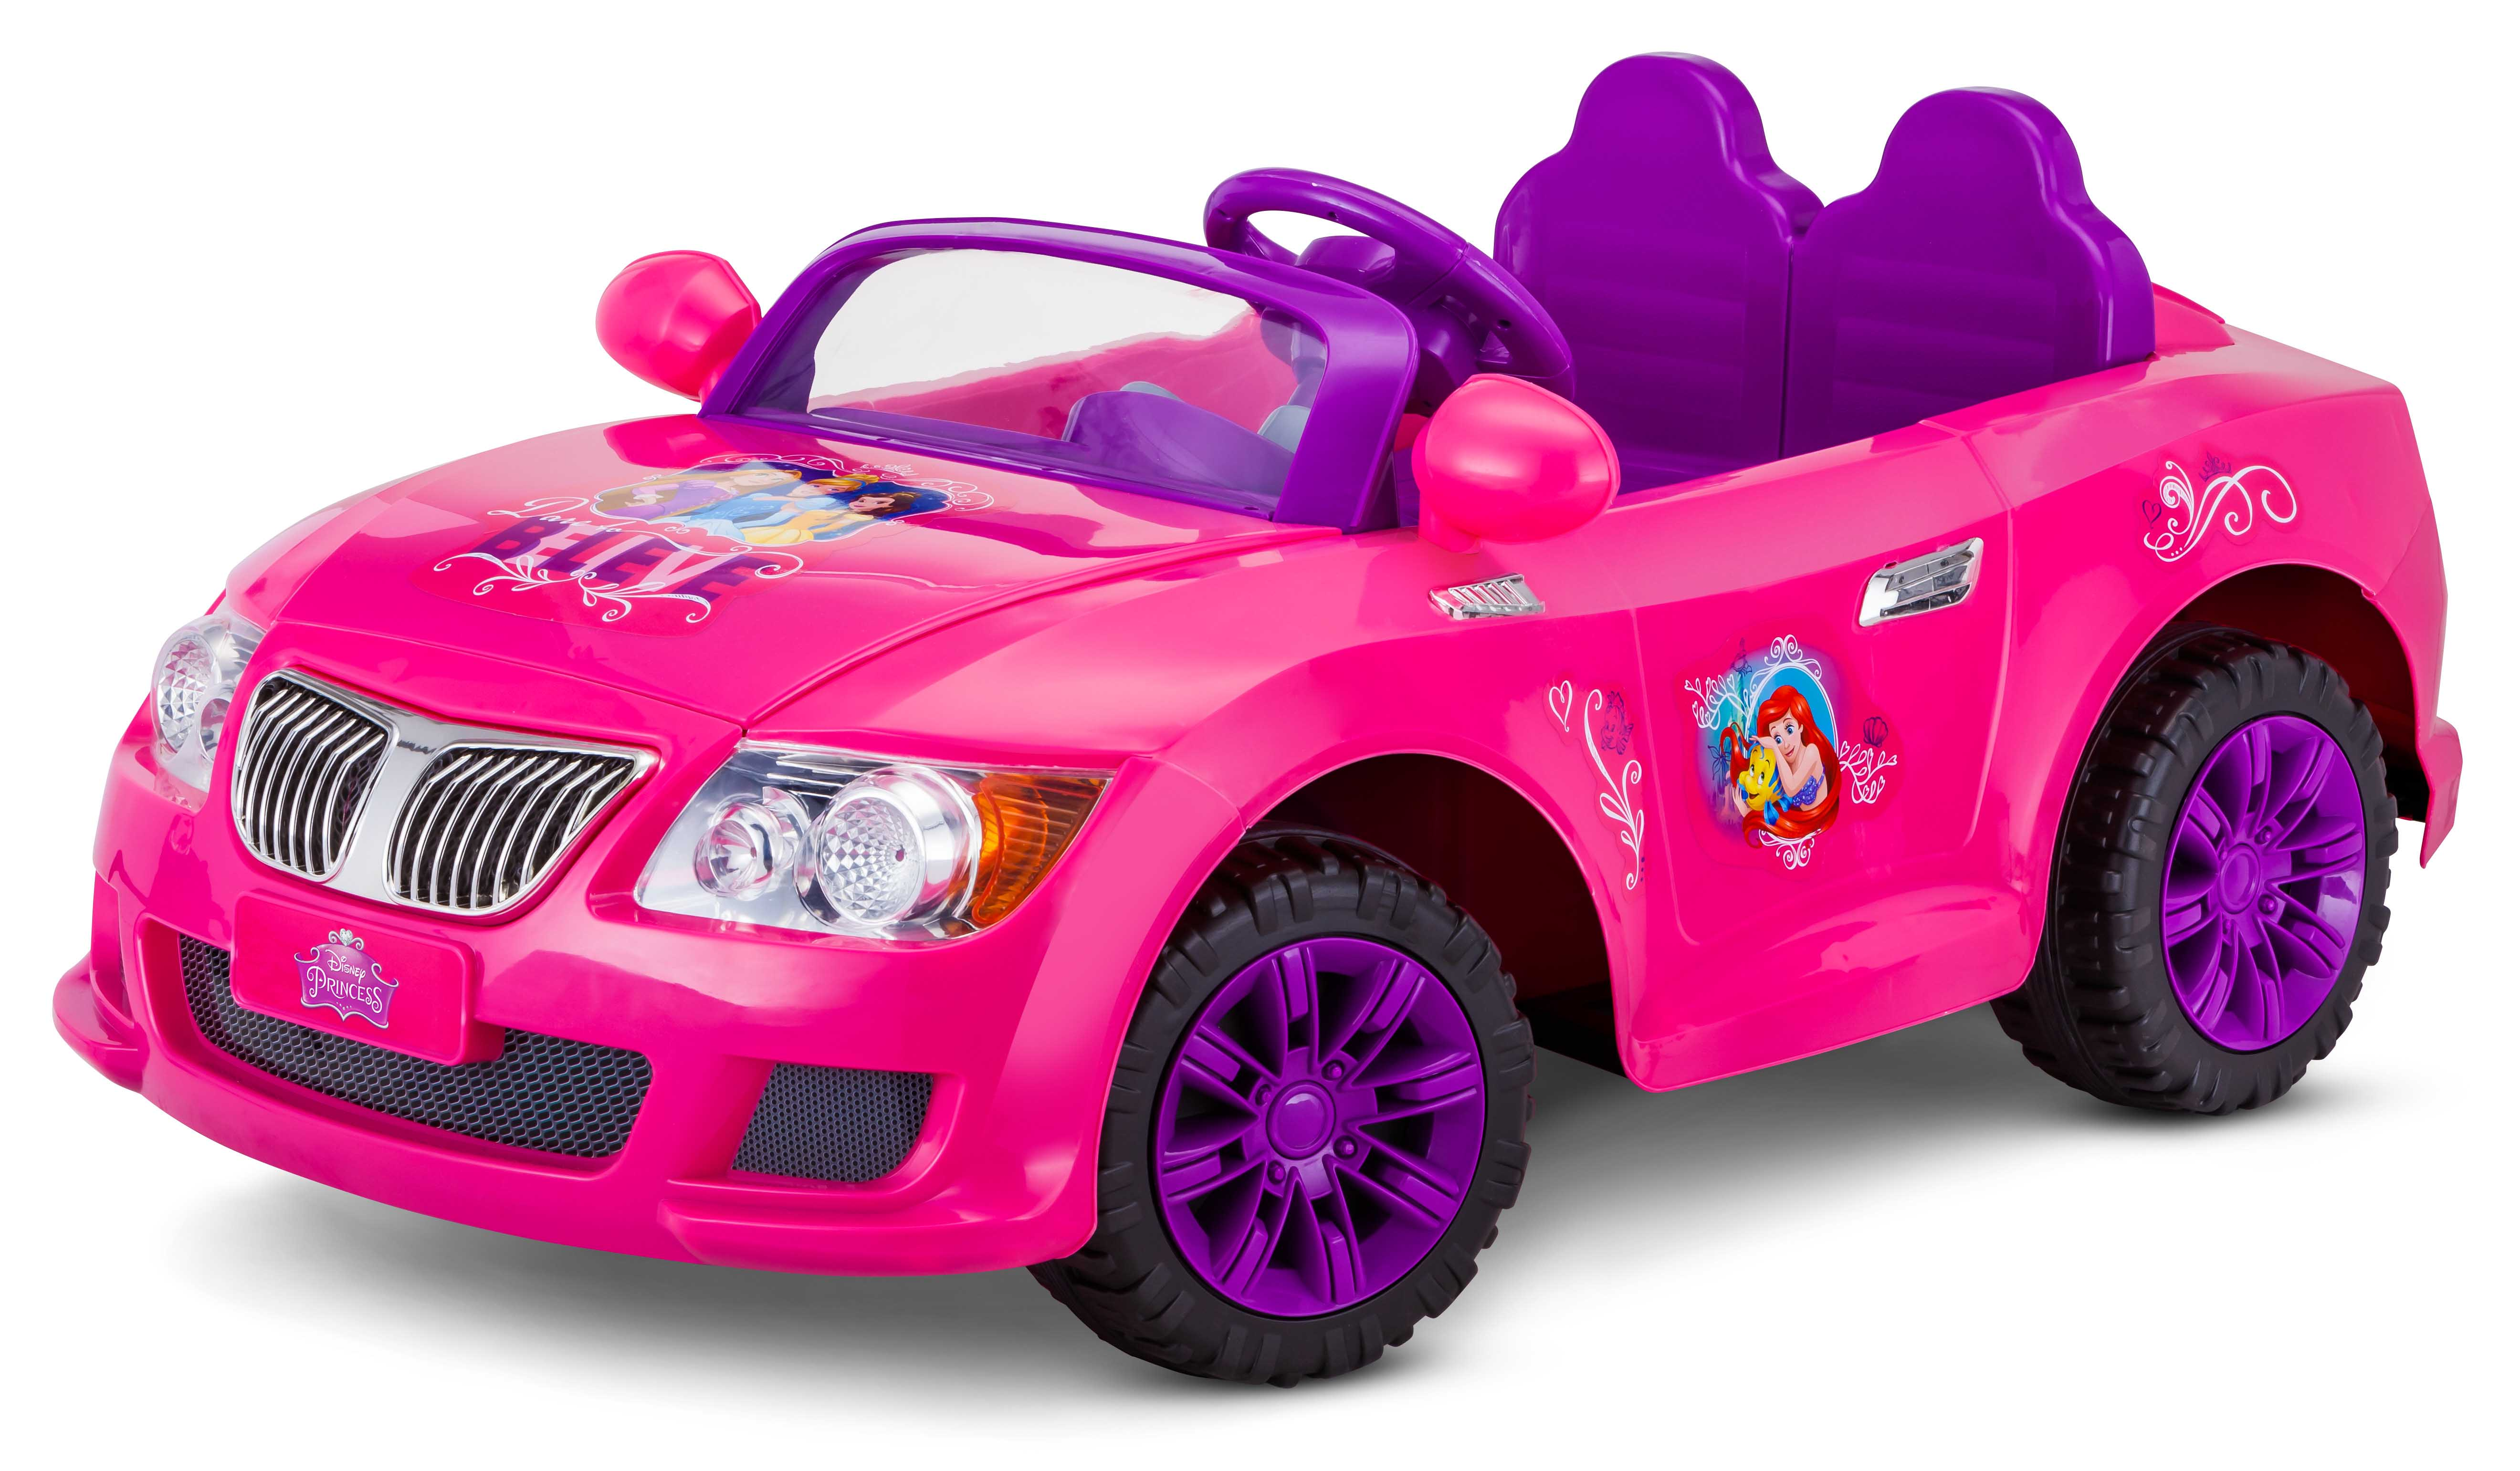 Power Wheels 12V Battery Ride-On Disney Princess Convertible - A Kmart Exclusive